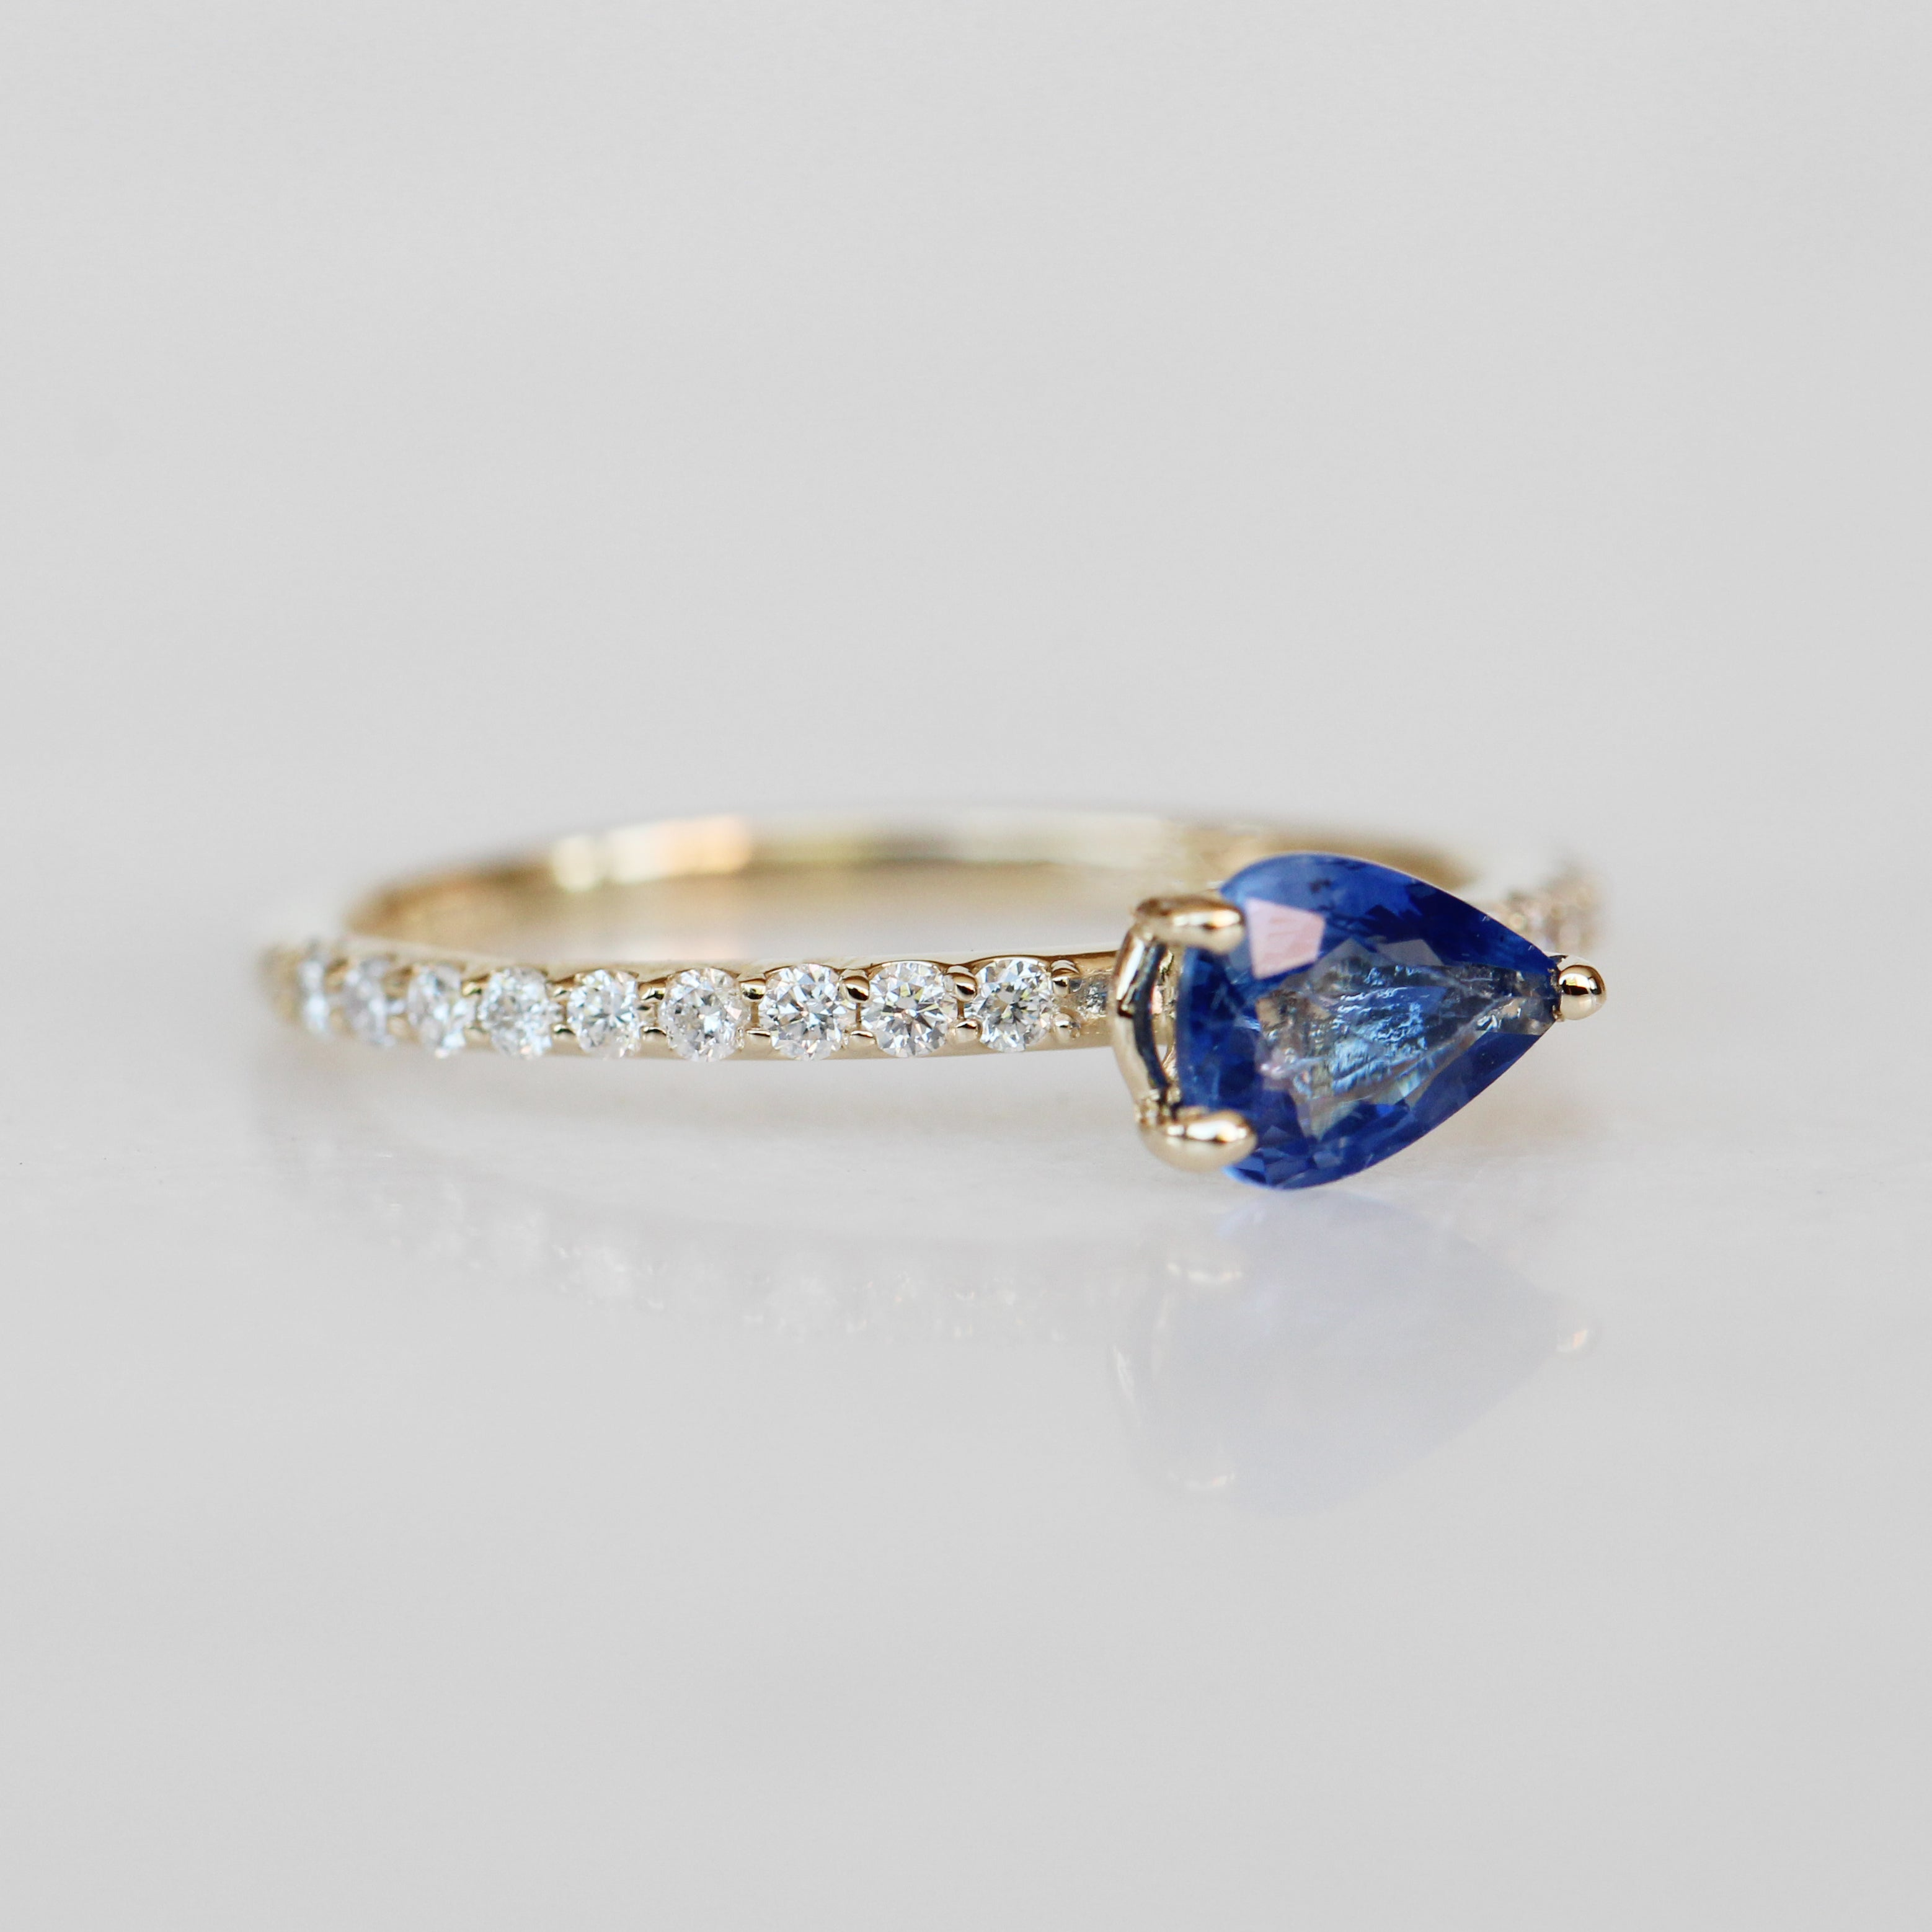 Raine Ring with a Pear Sapphire in 10k Yellow Gold - Ready to Size and Ship - Salt & Pepper Celestial Diamond Engagement Rings and Wedding Bands  by Midwinter Co.